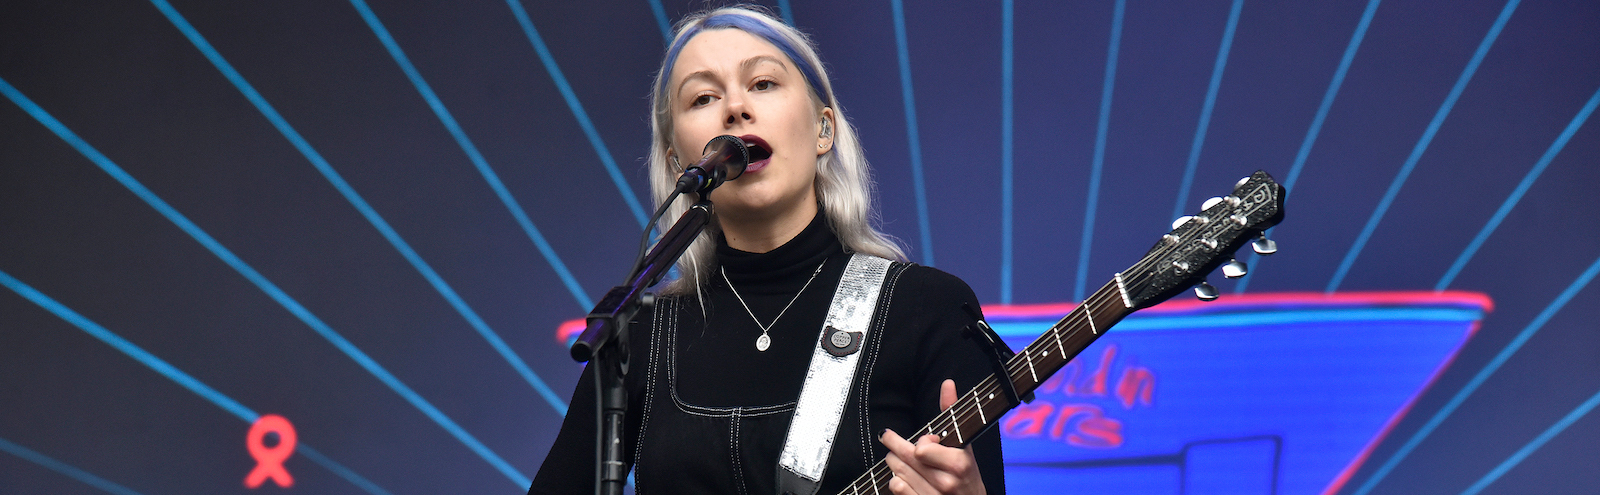 Phoebe Bridgers Said Her 'SNL' Guitar-Smashing Moment Was A 'Bucket List Thing' For Her